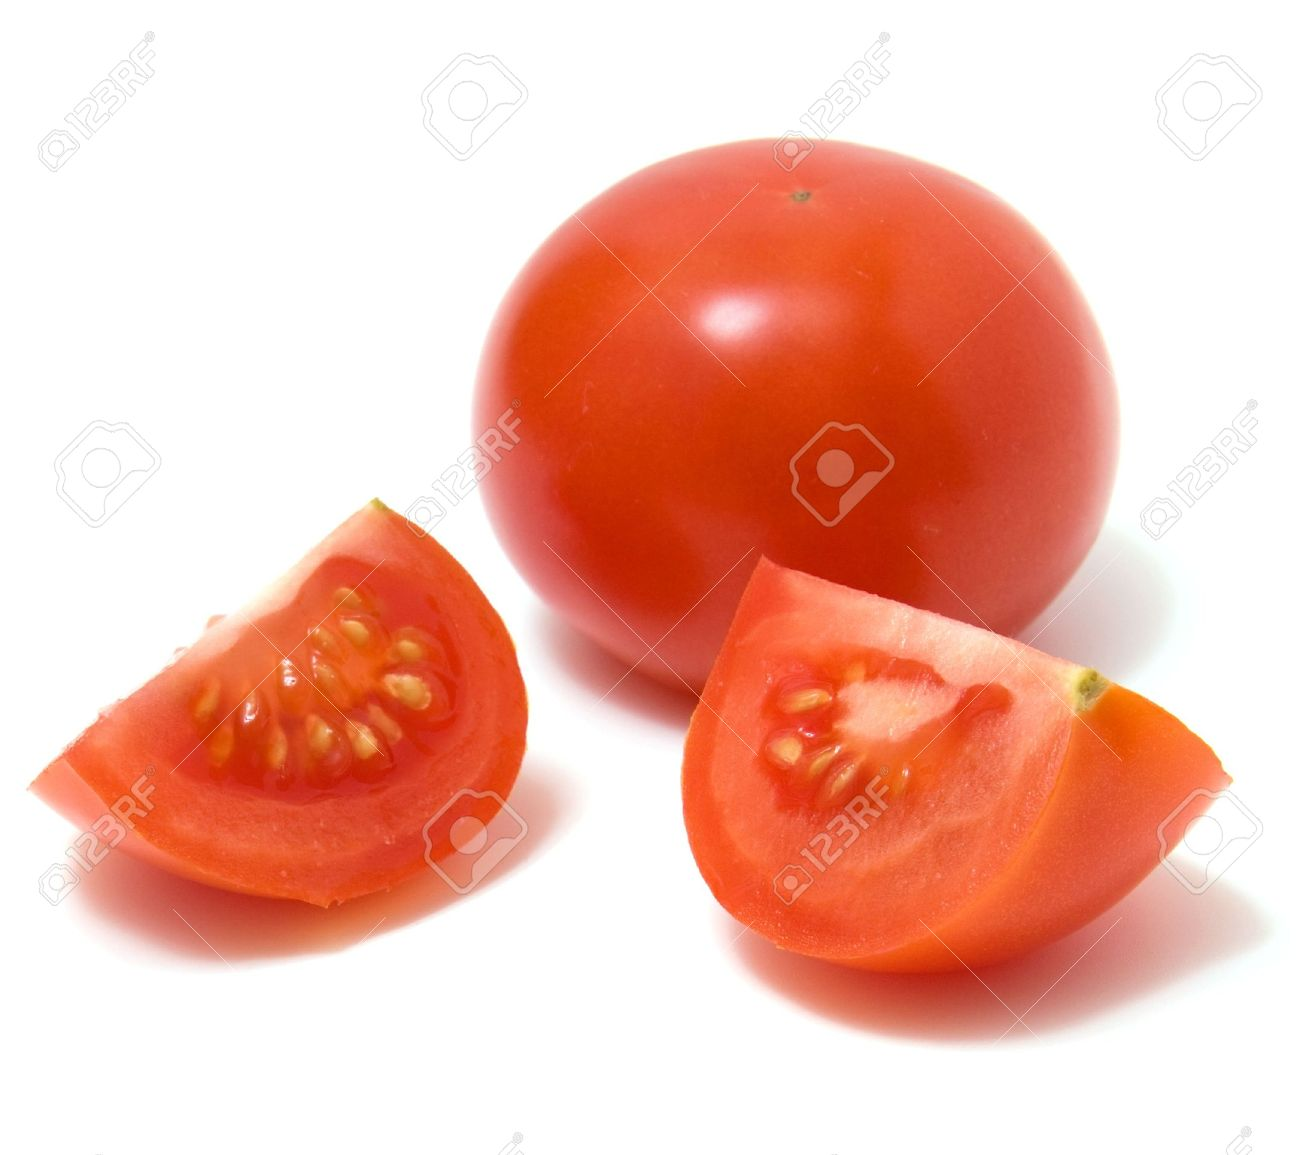 sliced tomato isolated on white background stock photo picture and